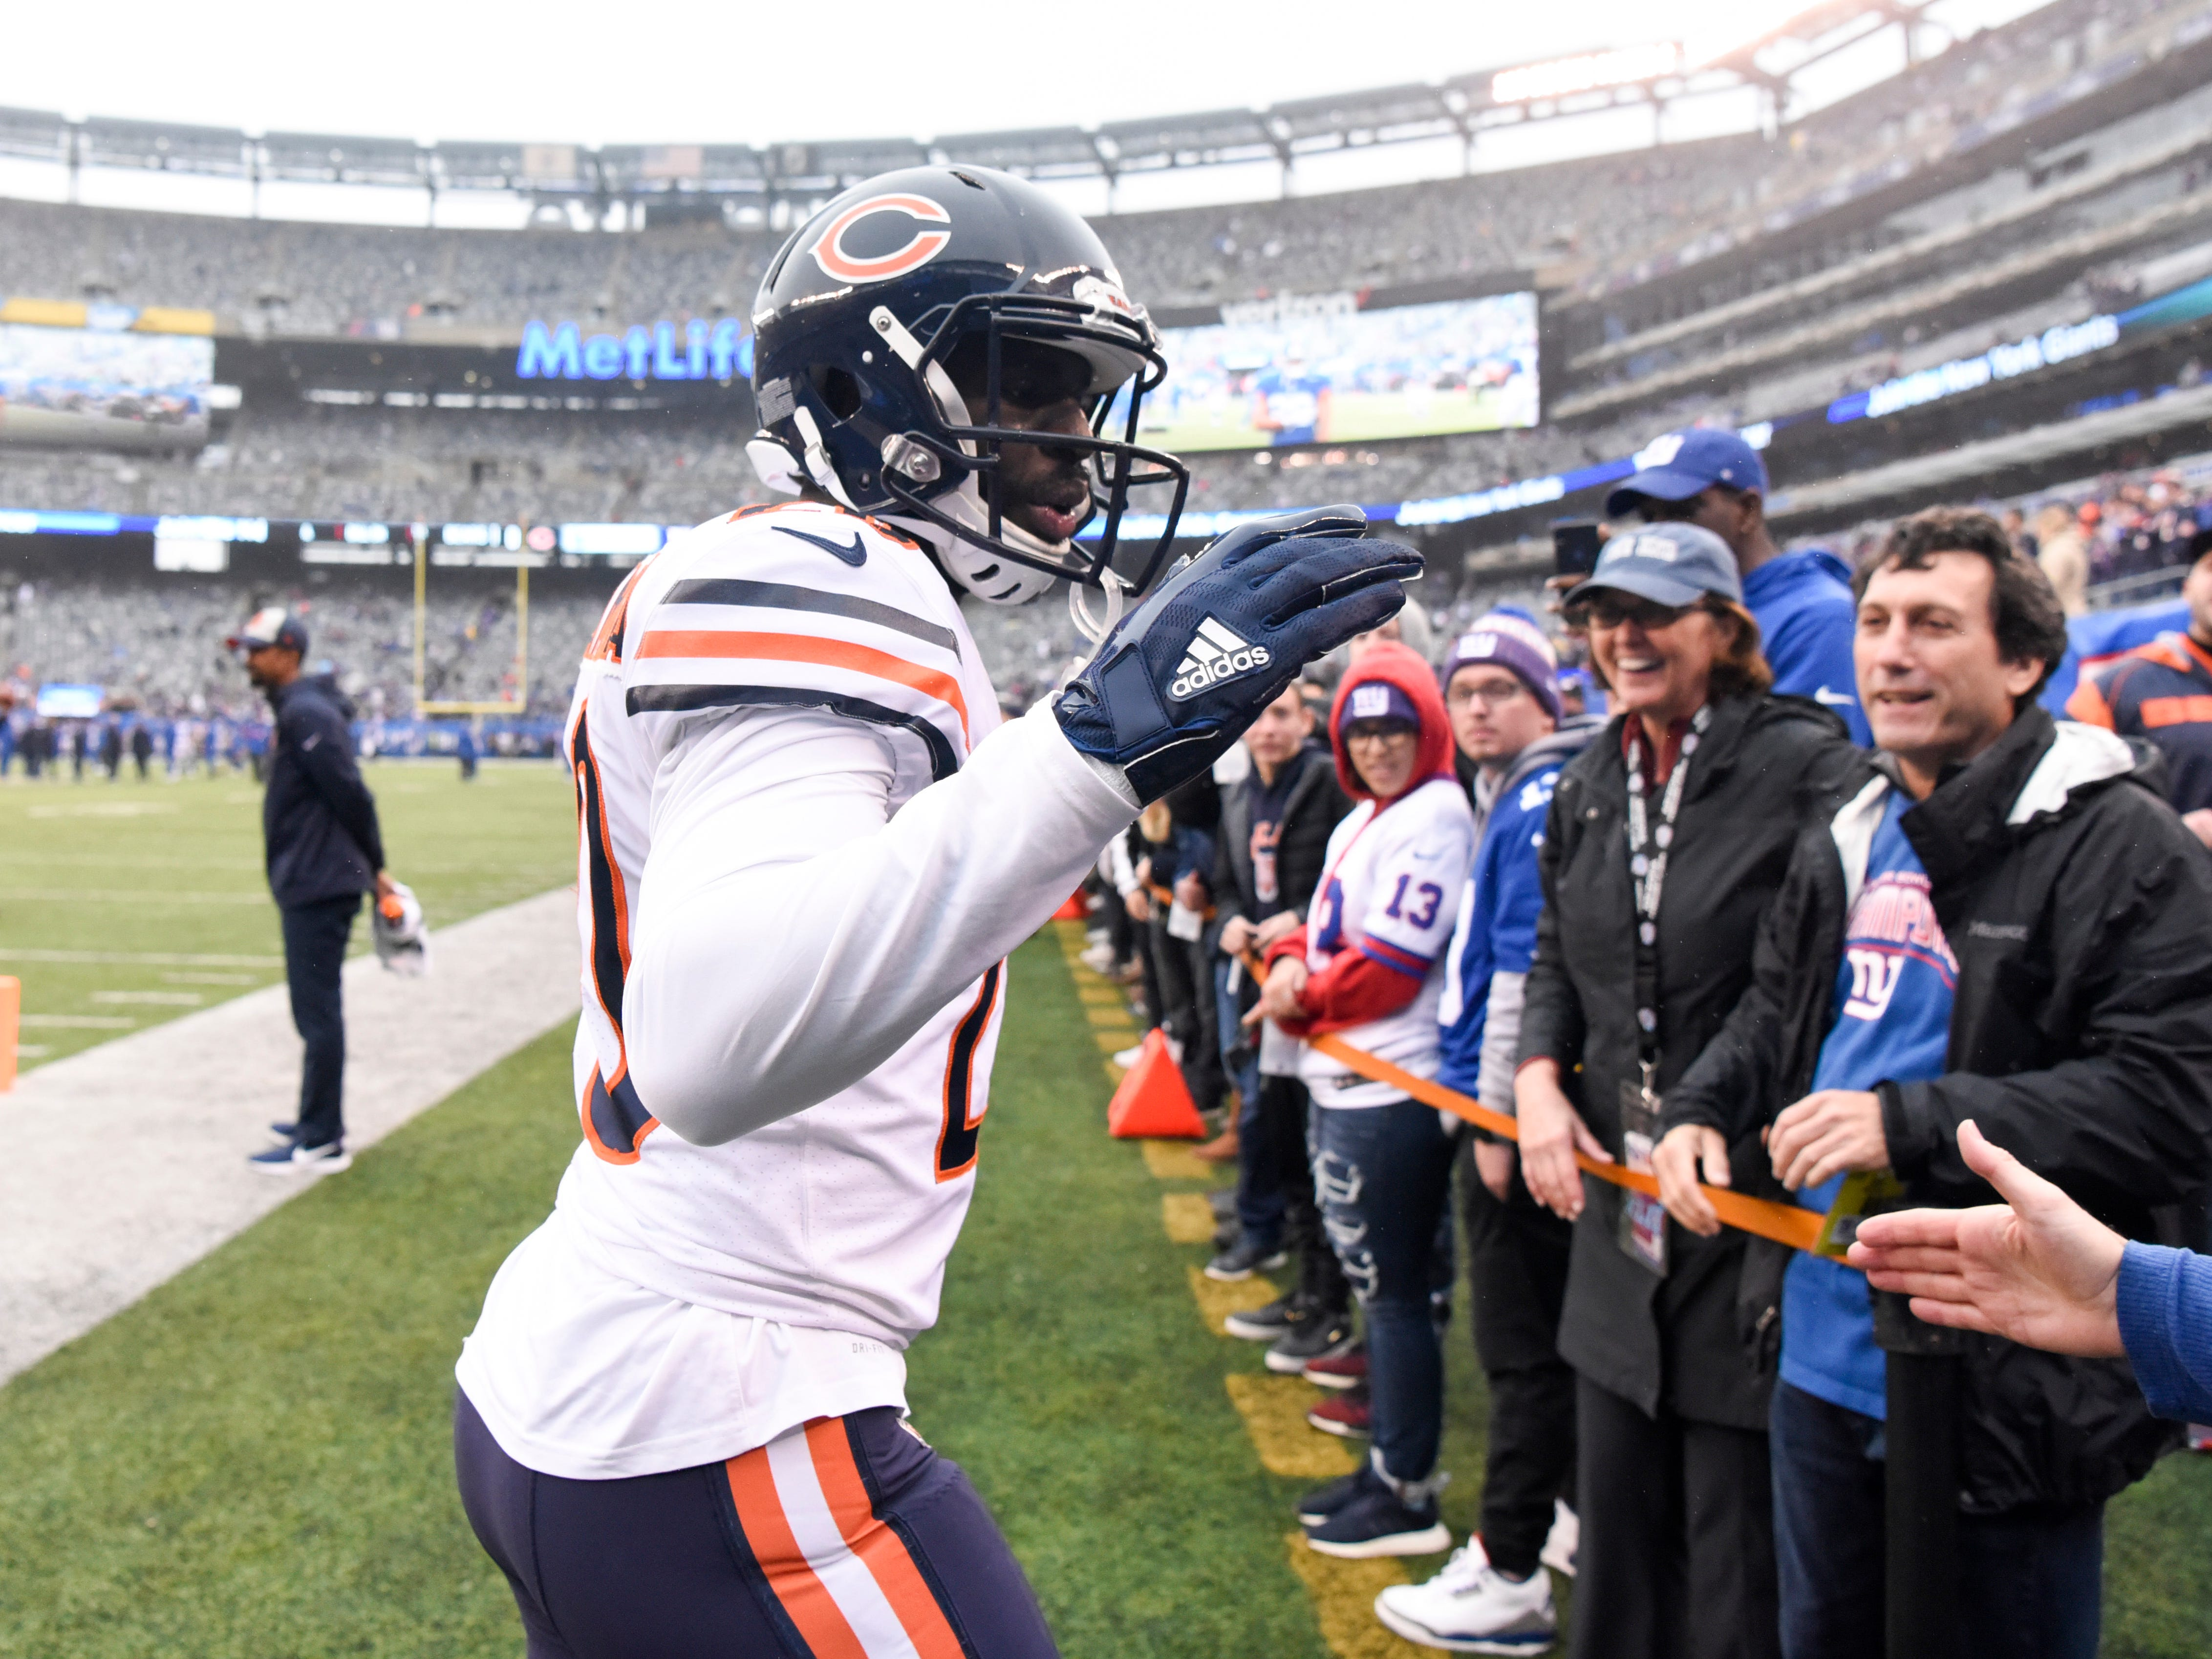 Chicago Bears cornerback Prince Amukamara (20) high-fives Giants fans on his return to MetLife Stadium. The New York Giants face the Chicago Bears on Sunday, Dec. 2, 2018, in East Rutherford.